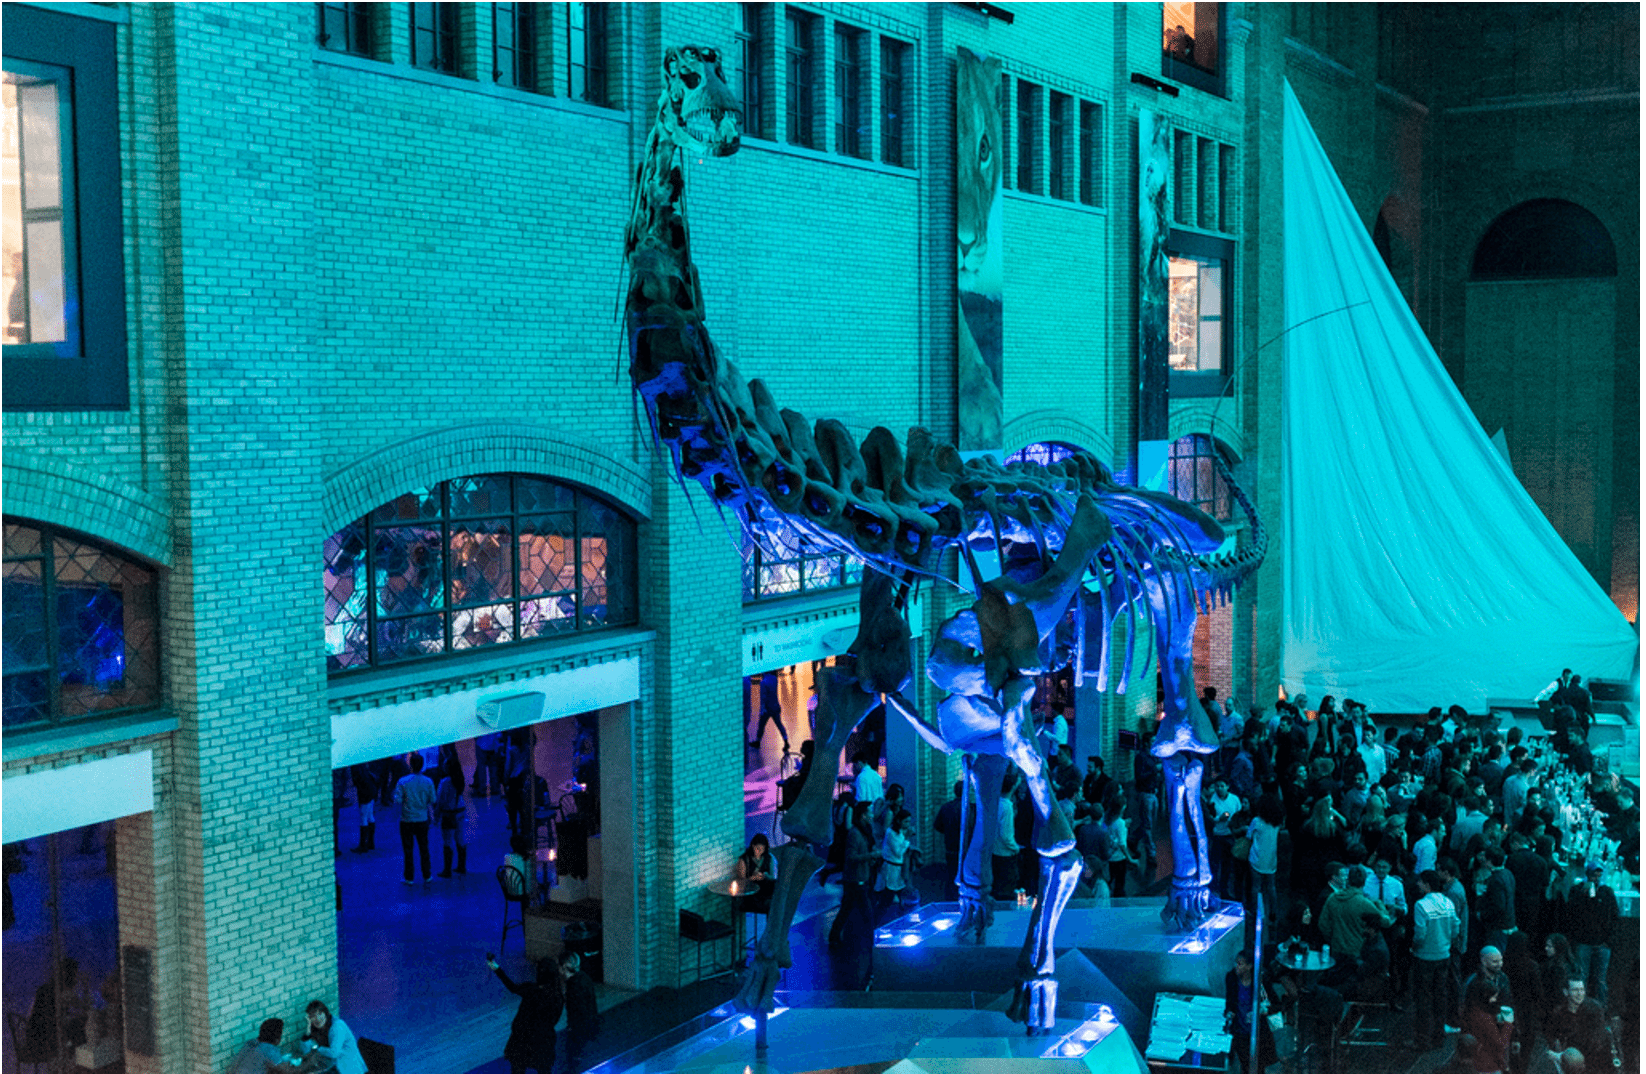 Friday Night Live at the ROM in 2013. Photo by Jae Yang in the Torontoist Flickr Pool.